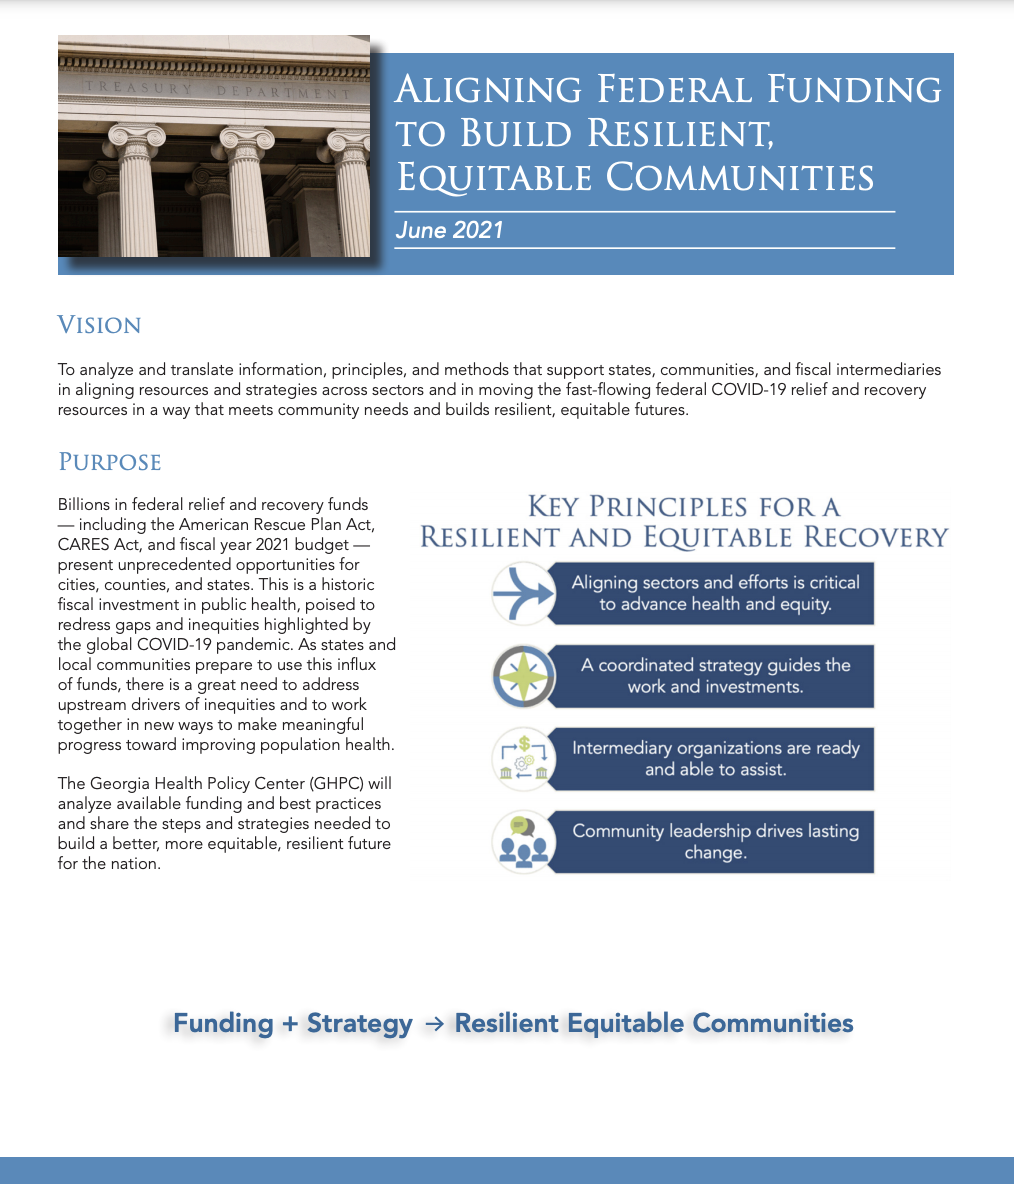 Aligning Federal Funding to Build Resilient, Equitable Communities